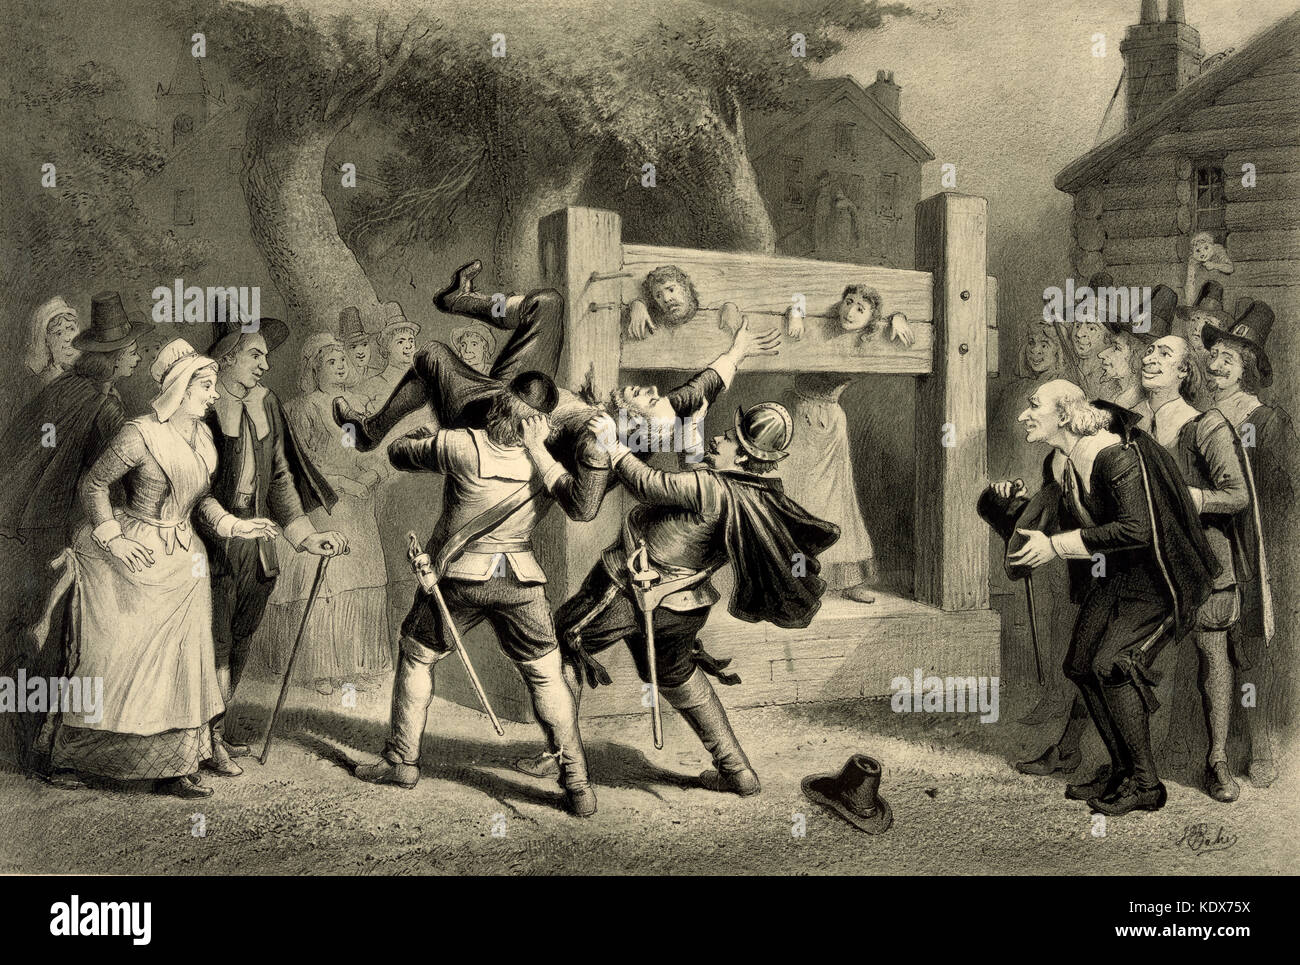 argumentative salem witch trials The summer of 1692, was a dark period in the history of salem, massachusetts people were accused of witchcraft and sentenced to horrific punishments 20 people were.